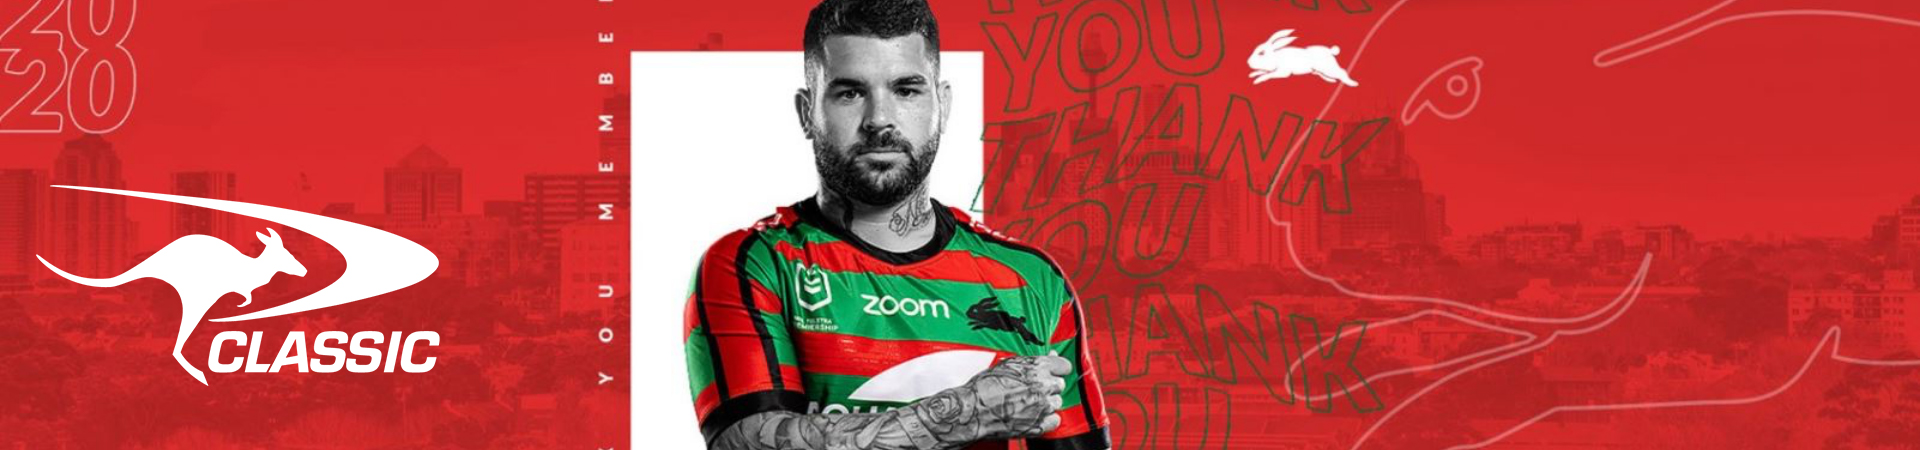 Classic Sportswear Team Up With South Sydney Rabbitohs on Special Members' Jersey